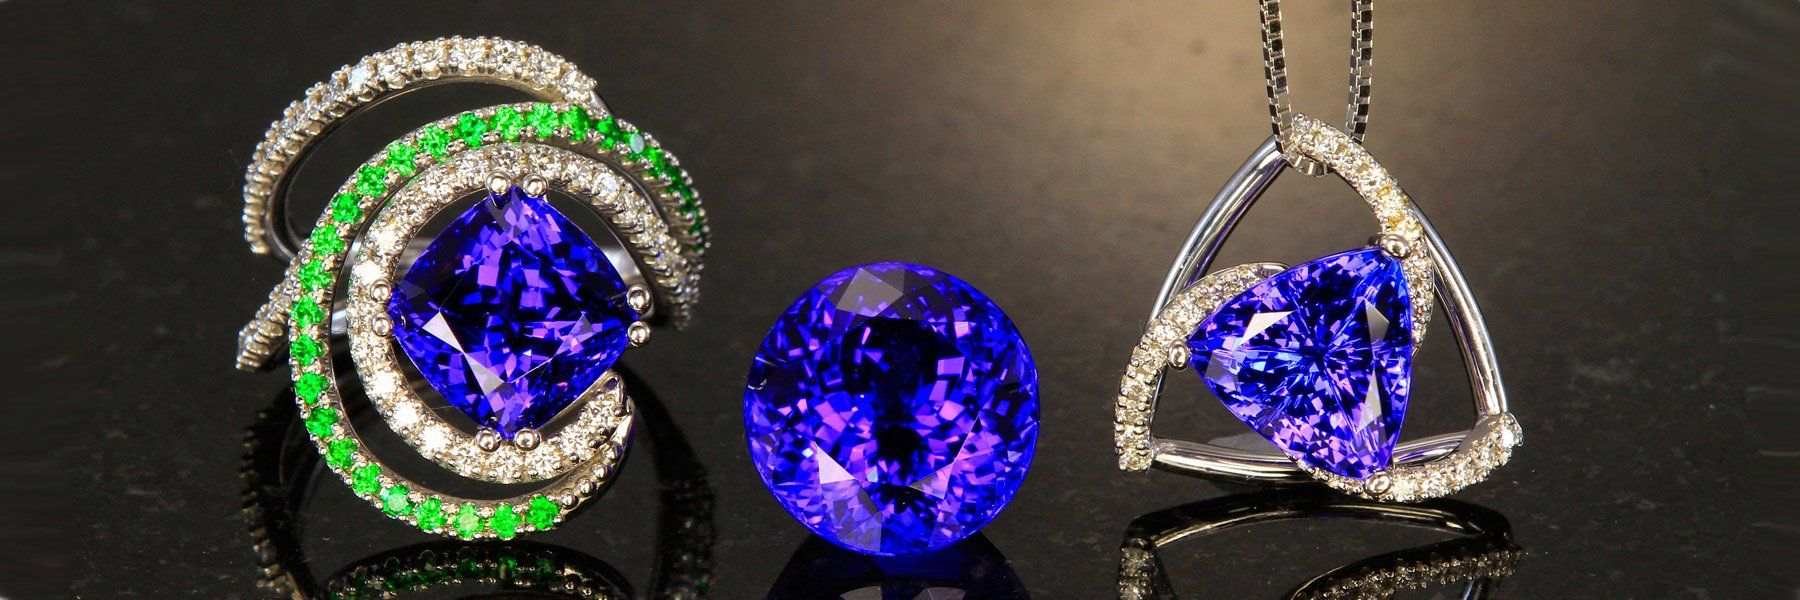 Tanzanite in Britain